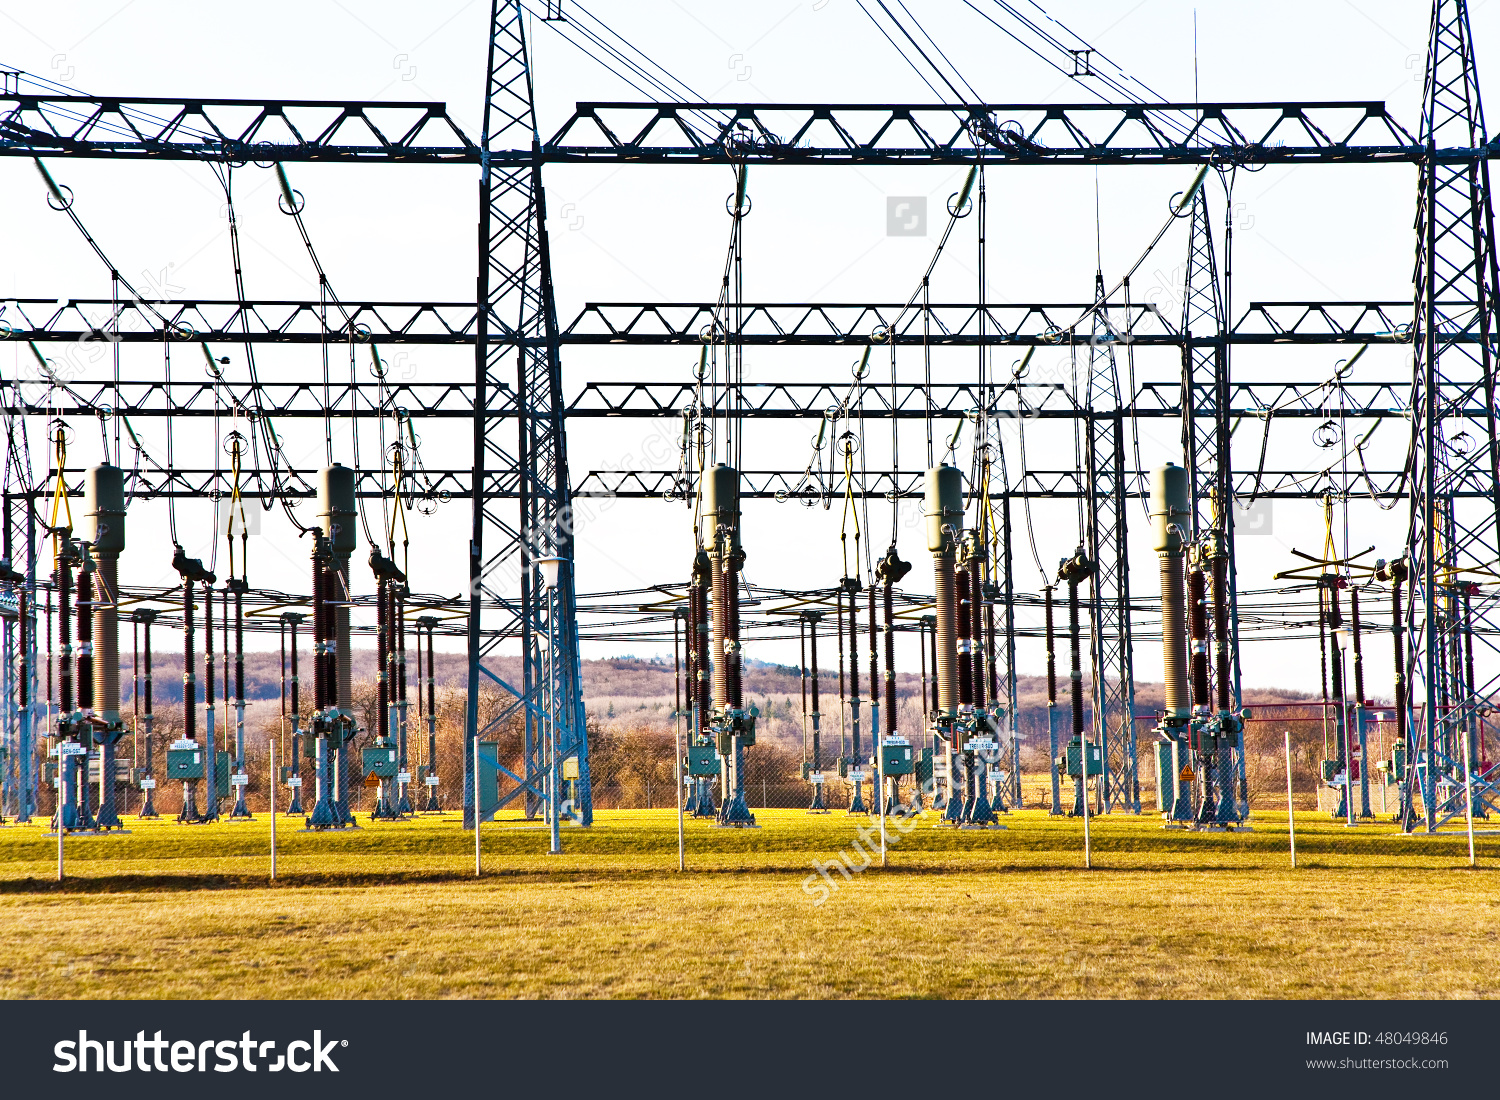 Electricity Relay Station Highvoltage Insulator Power Stock Photo.